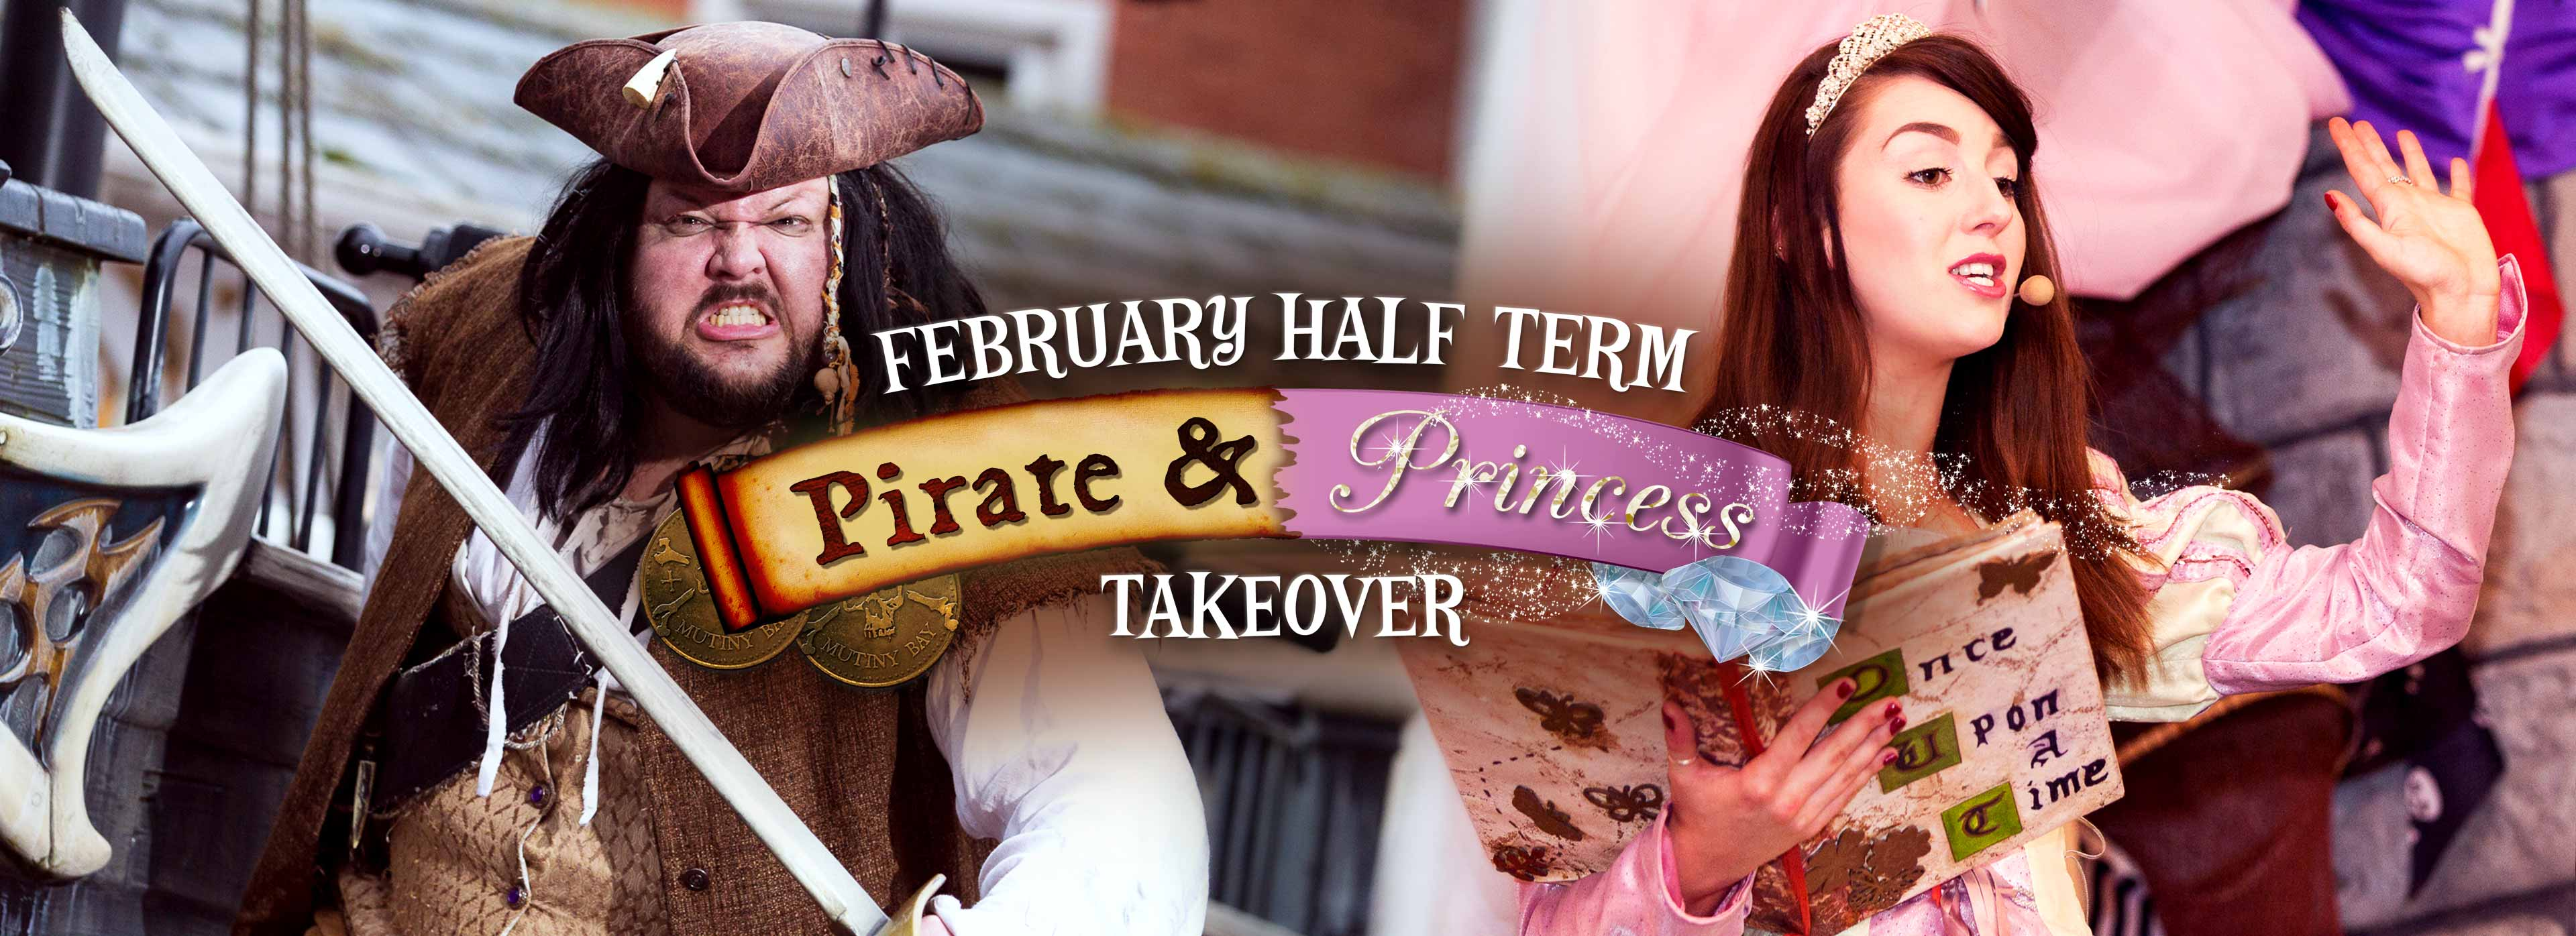 February Half Term 2019 at Alton Towers Resort